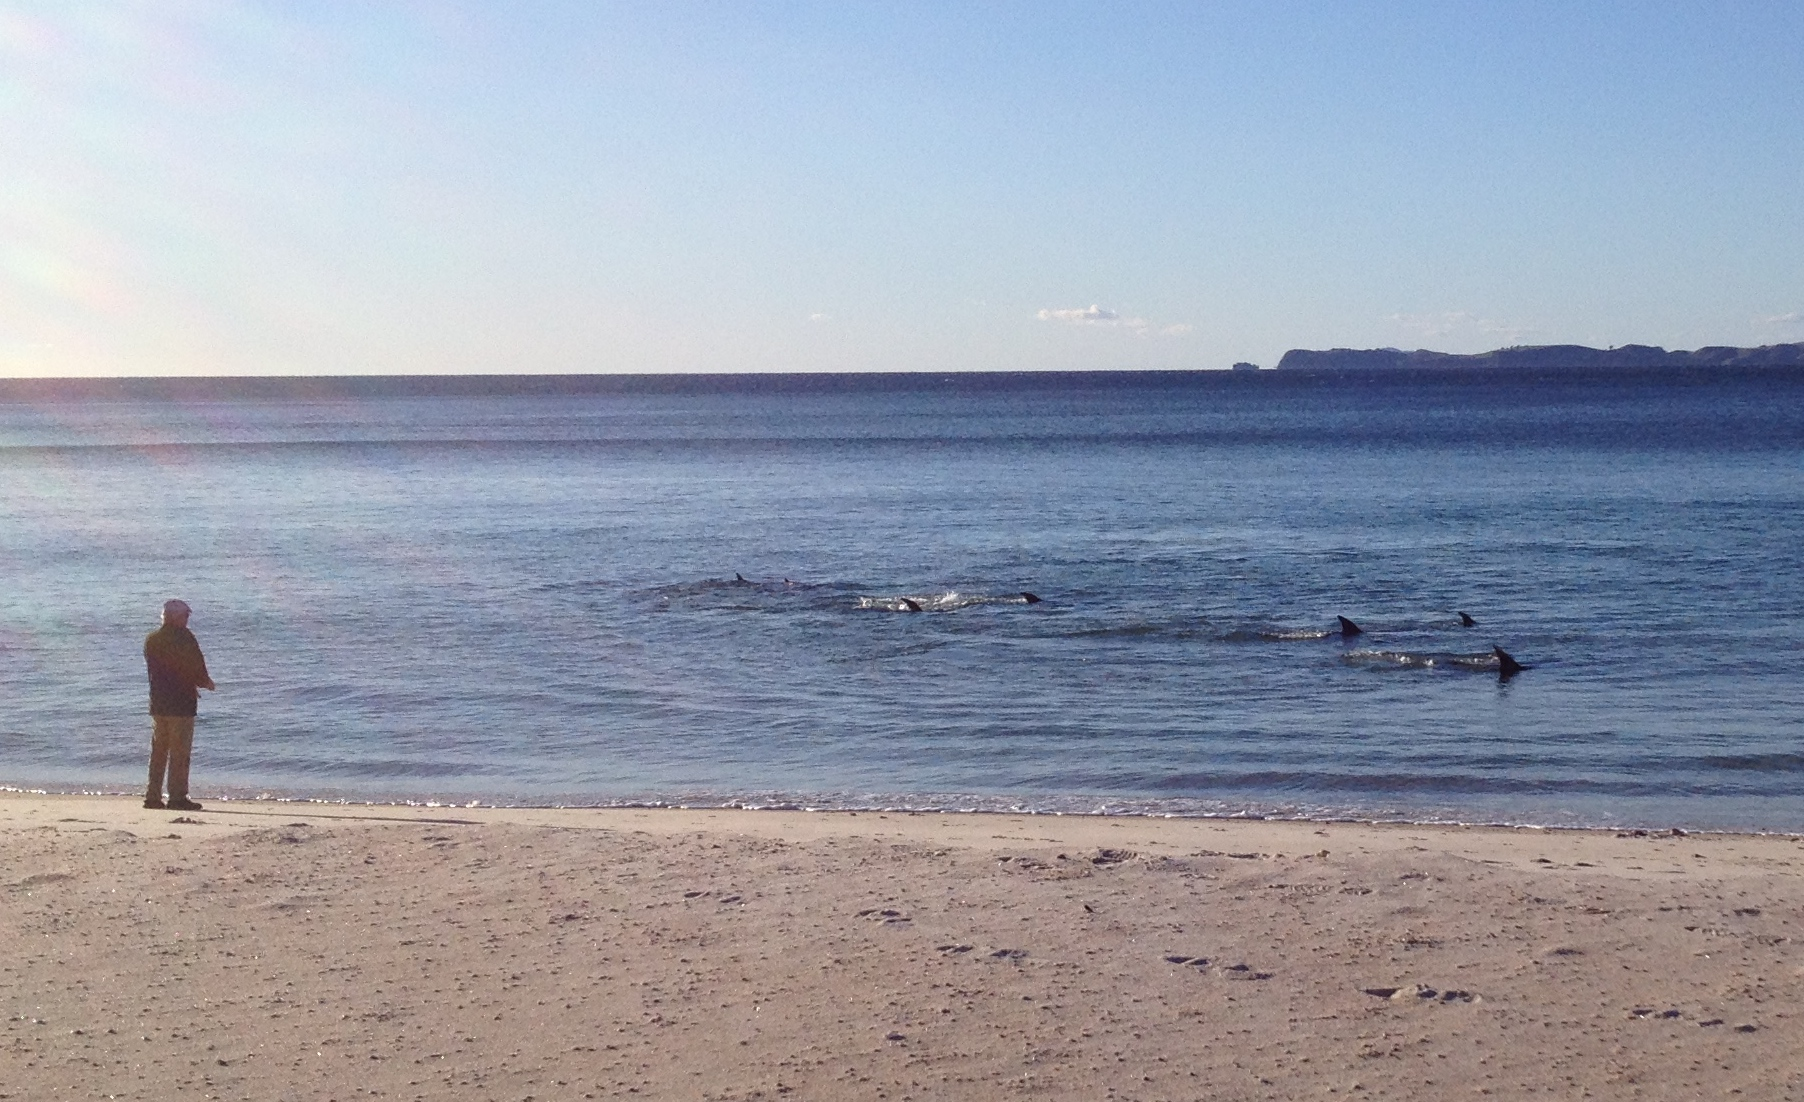 Our activities group stopped off at Otama when they saw this pod of dolphins playing around very close to the beach. Perhaps they were feeding, they were right there for about an hour.